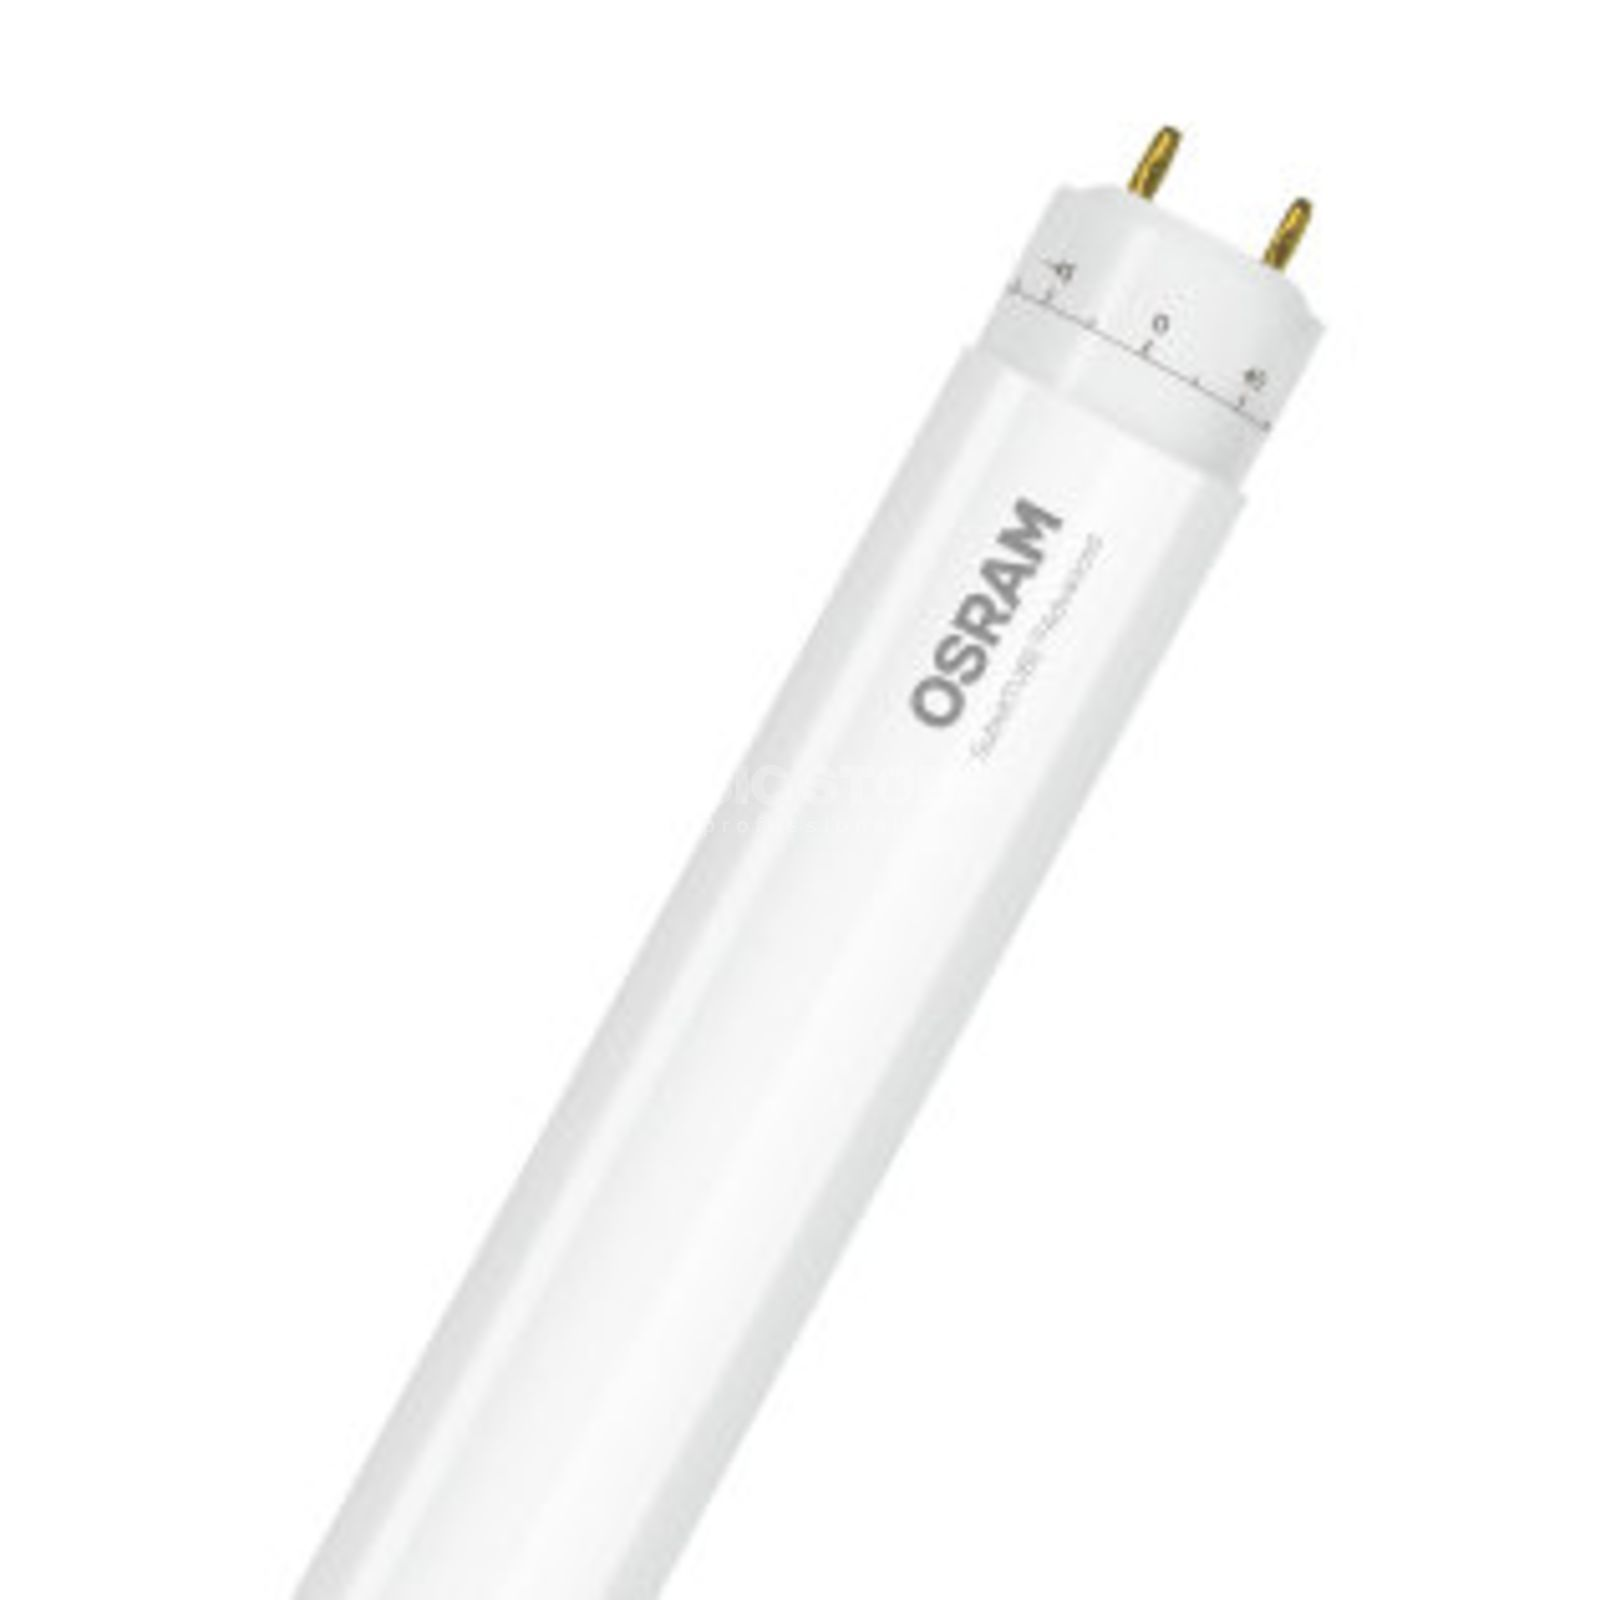 Osram SubstiTUBE Advanced Ultra ST8AU-1.5m-24W-840-EM Product Image